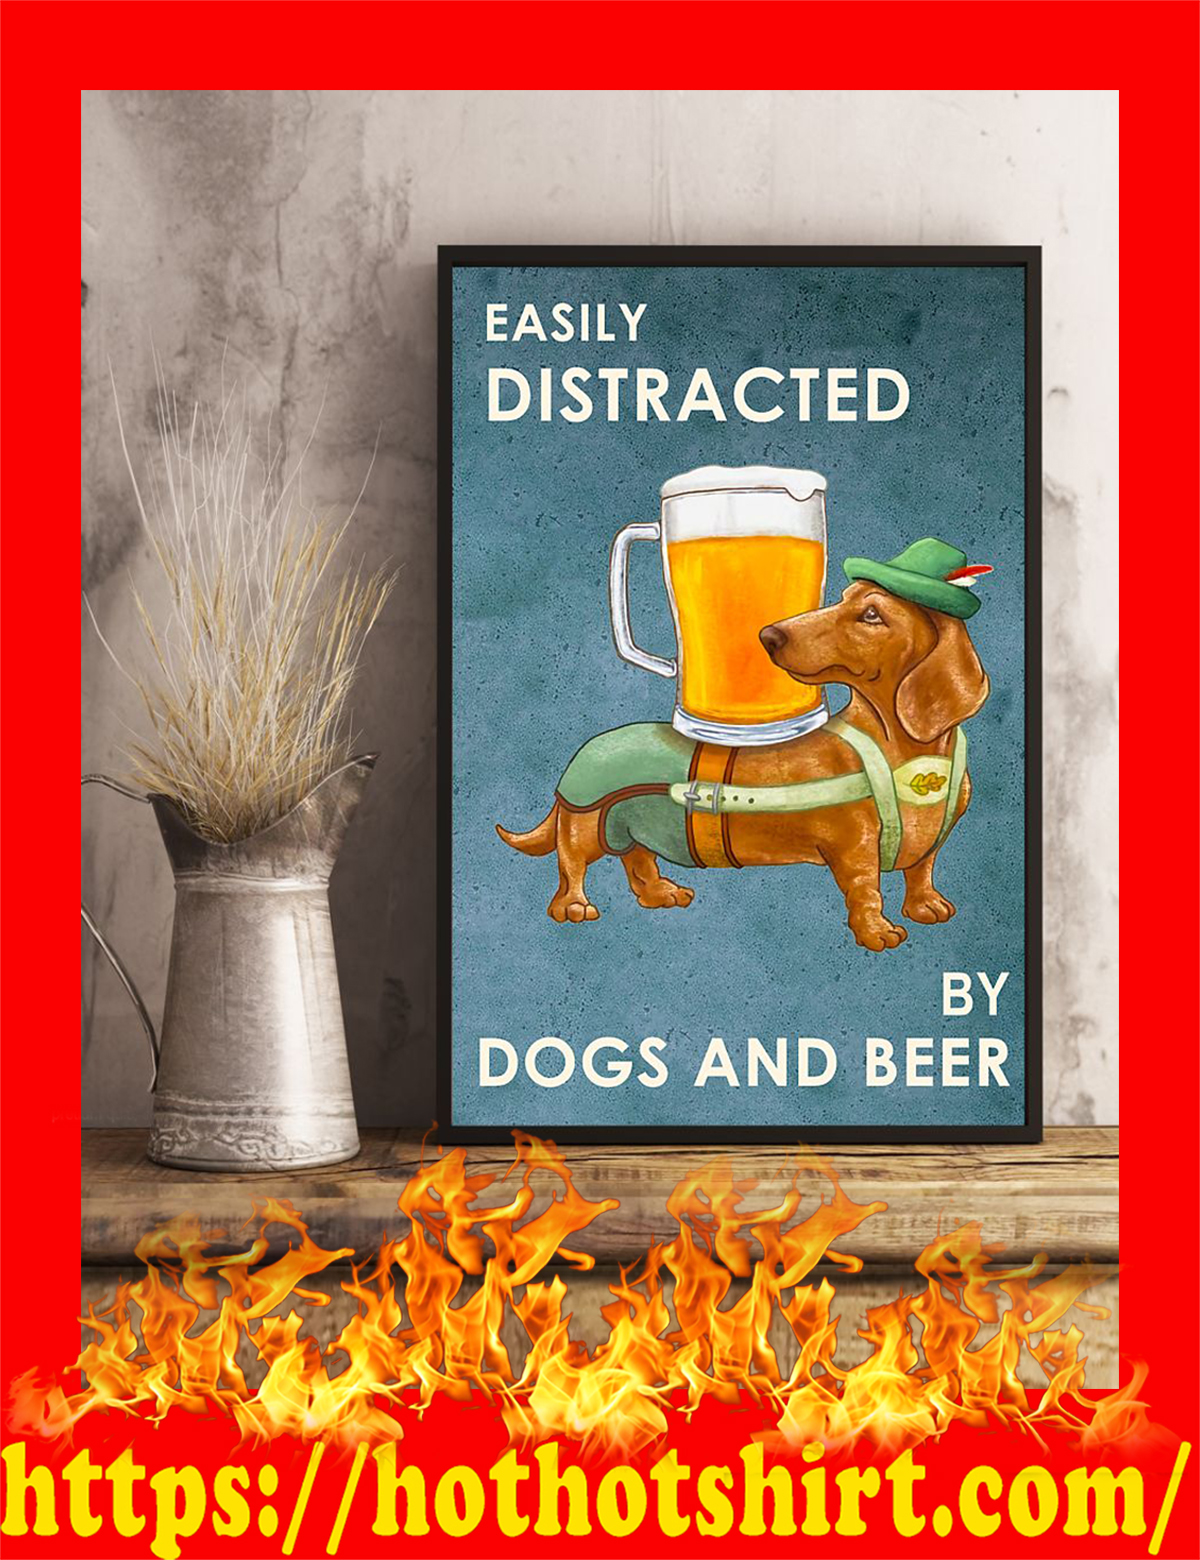 Dachshund Easily distracted by dogs and beer poster - pic 2